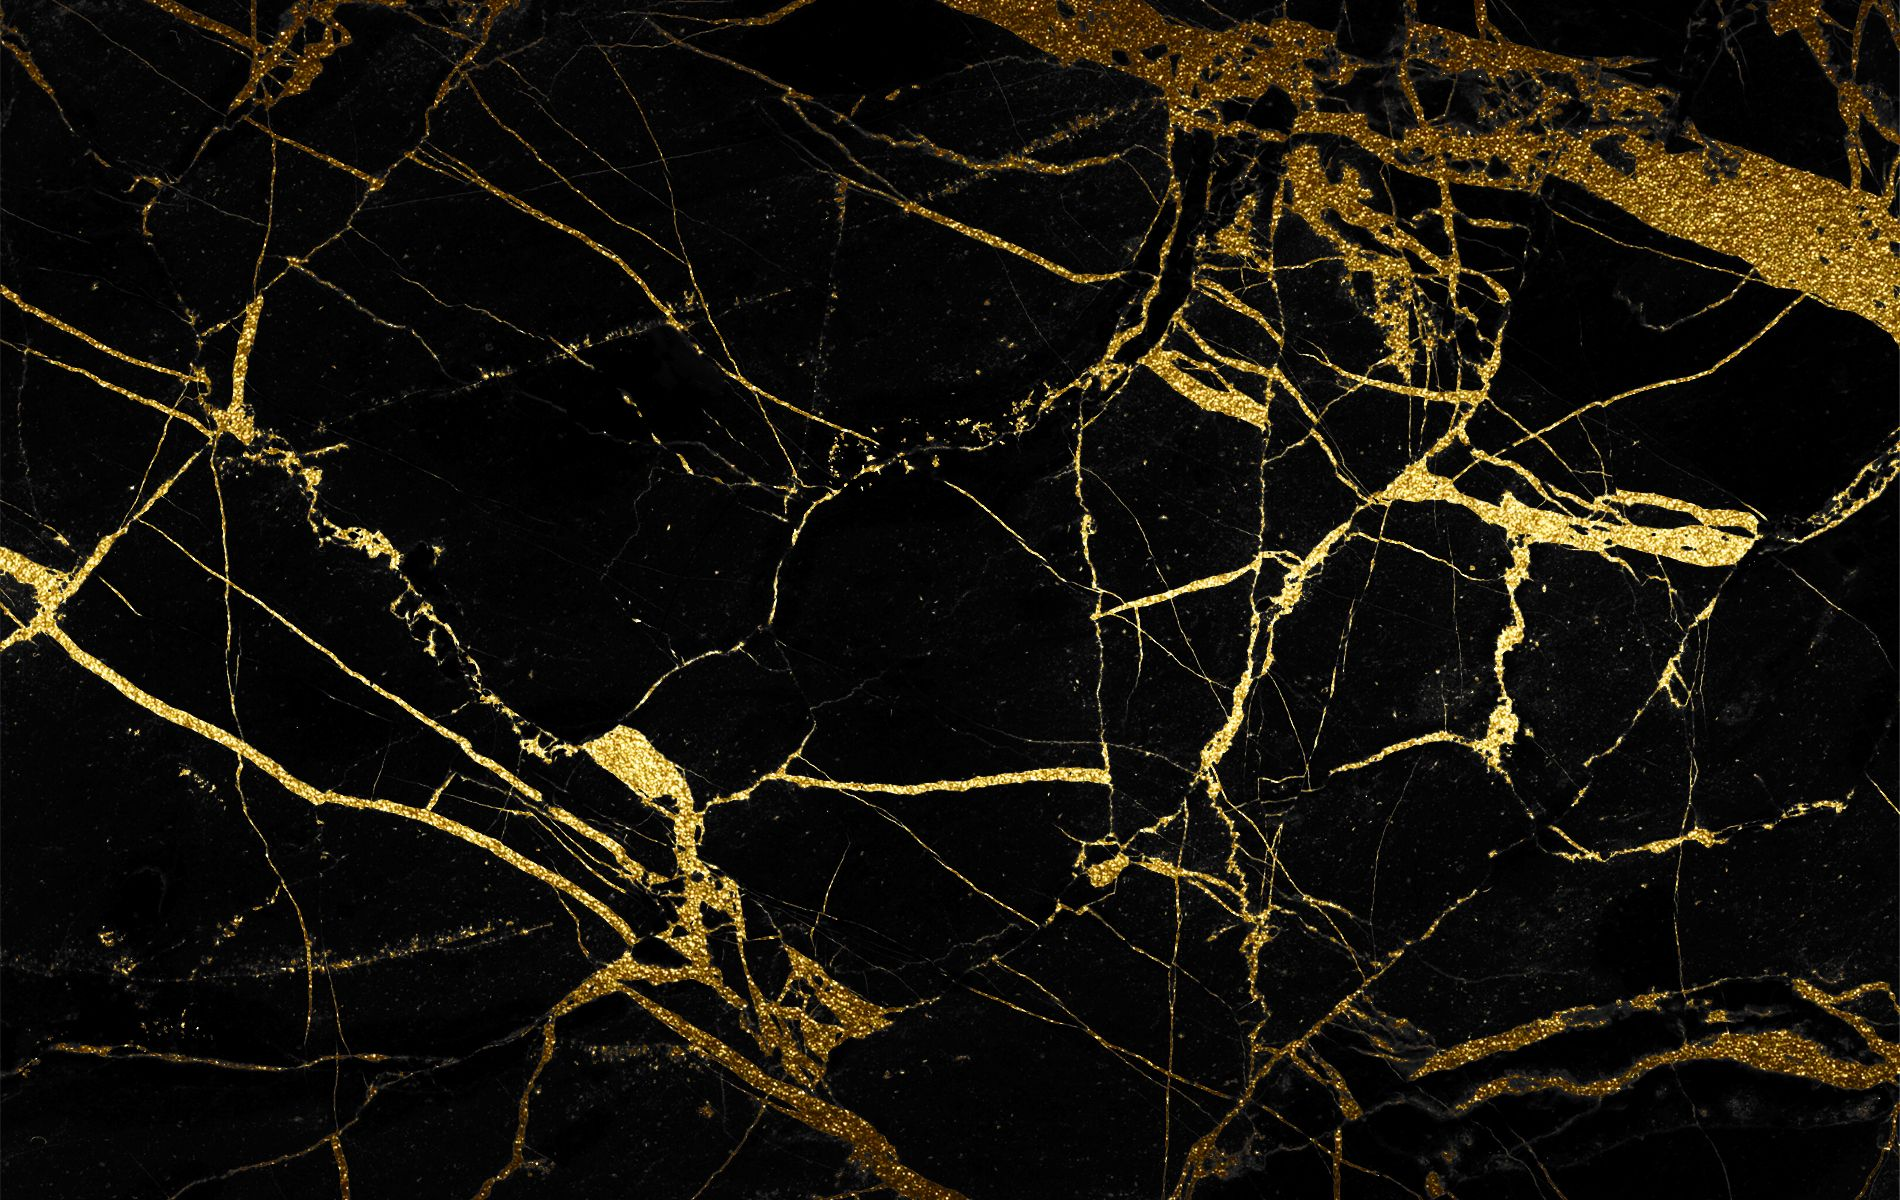 Black And Gold Wallpaper Hd Wallpapers Backgrounds Images Art Photos Black And Gold Marble Gold Marble Wallpaper Marble Wallpaper Hd